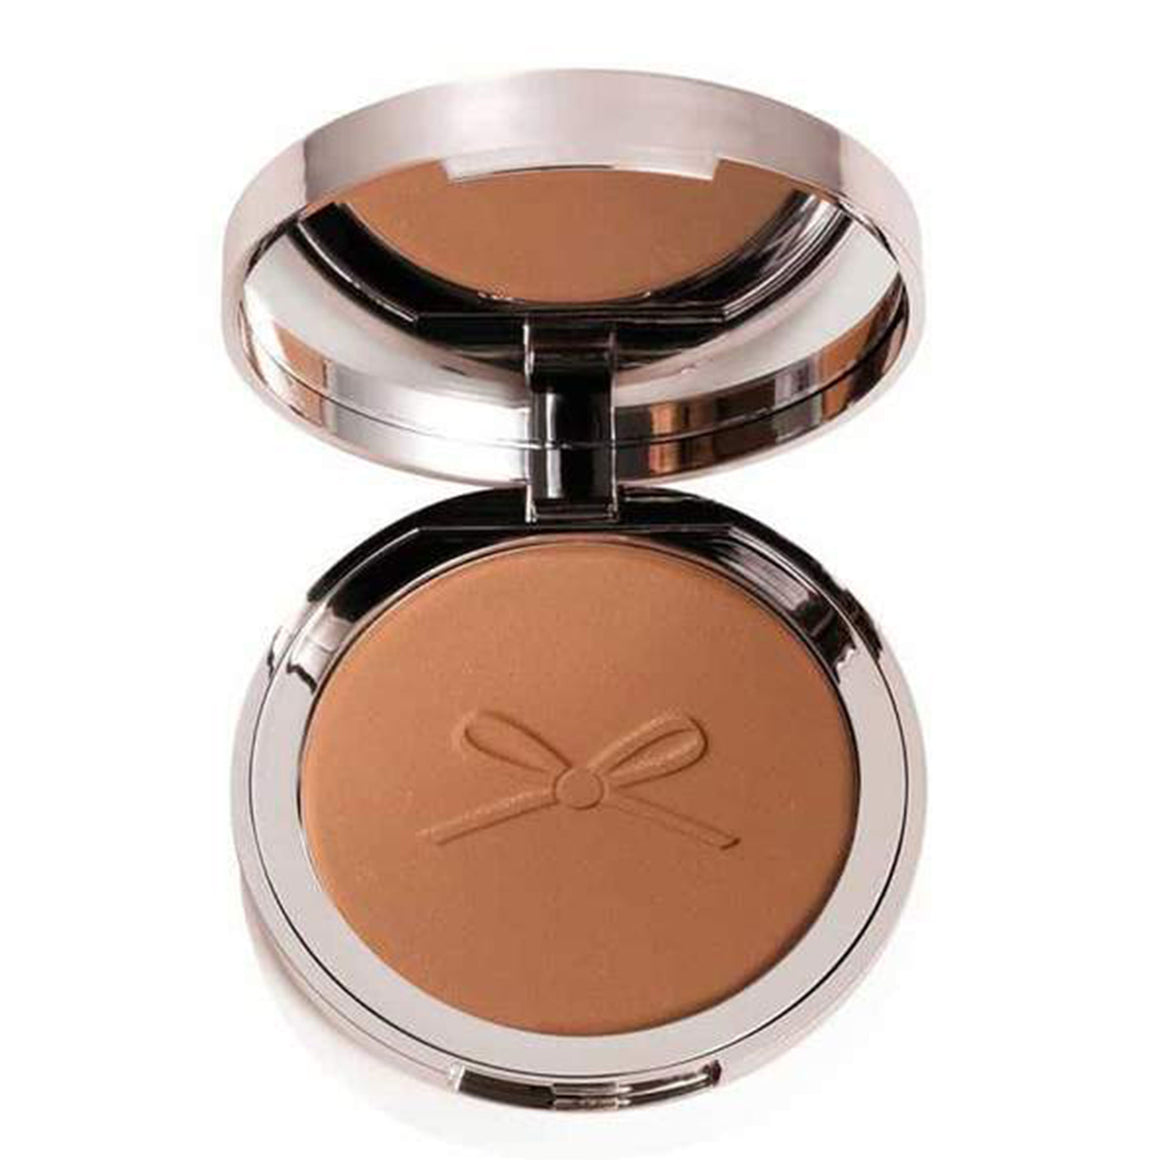 Ciate London - Bamboo Bronzer - South Beach